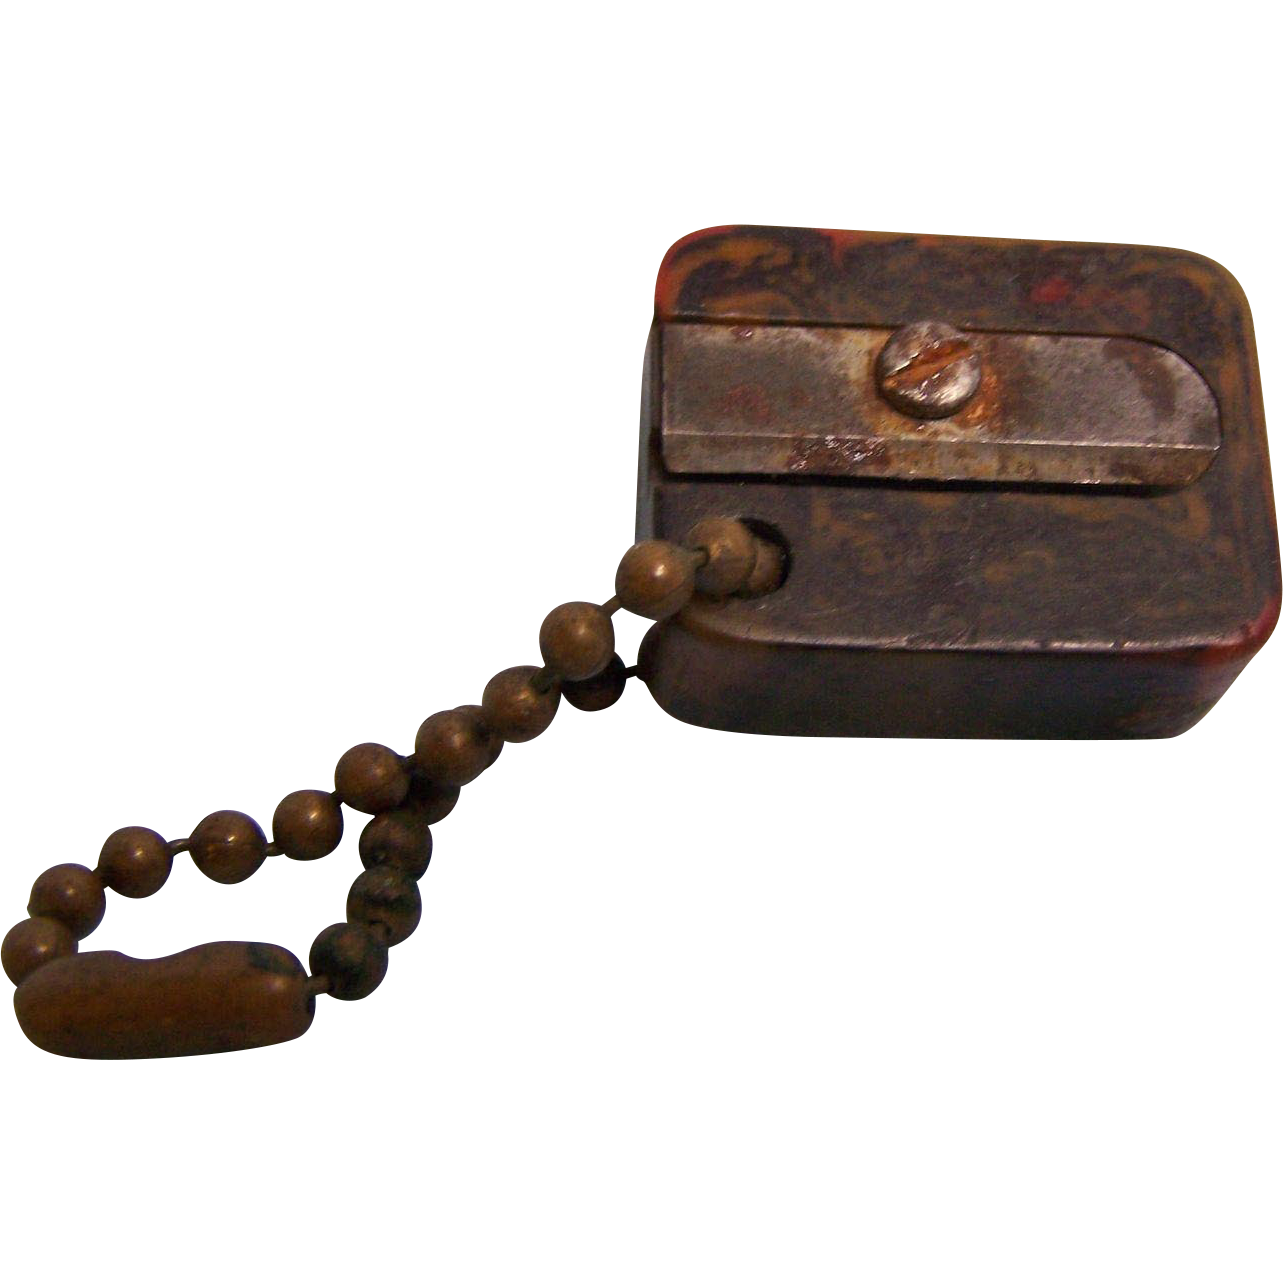 Bakelite pencil Sharpener with Chain